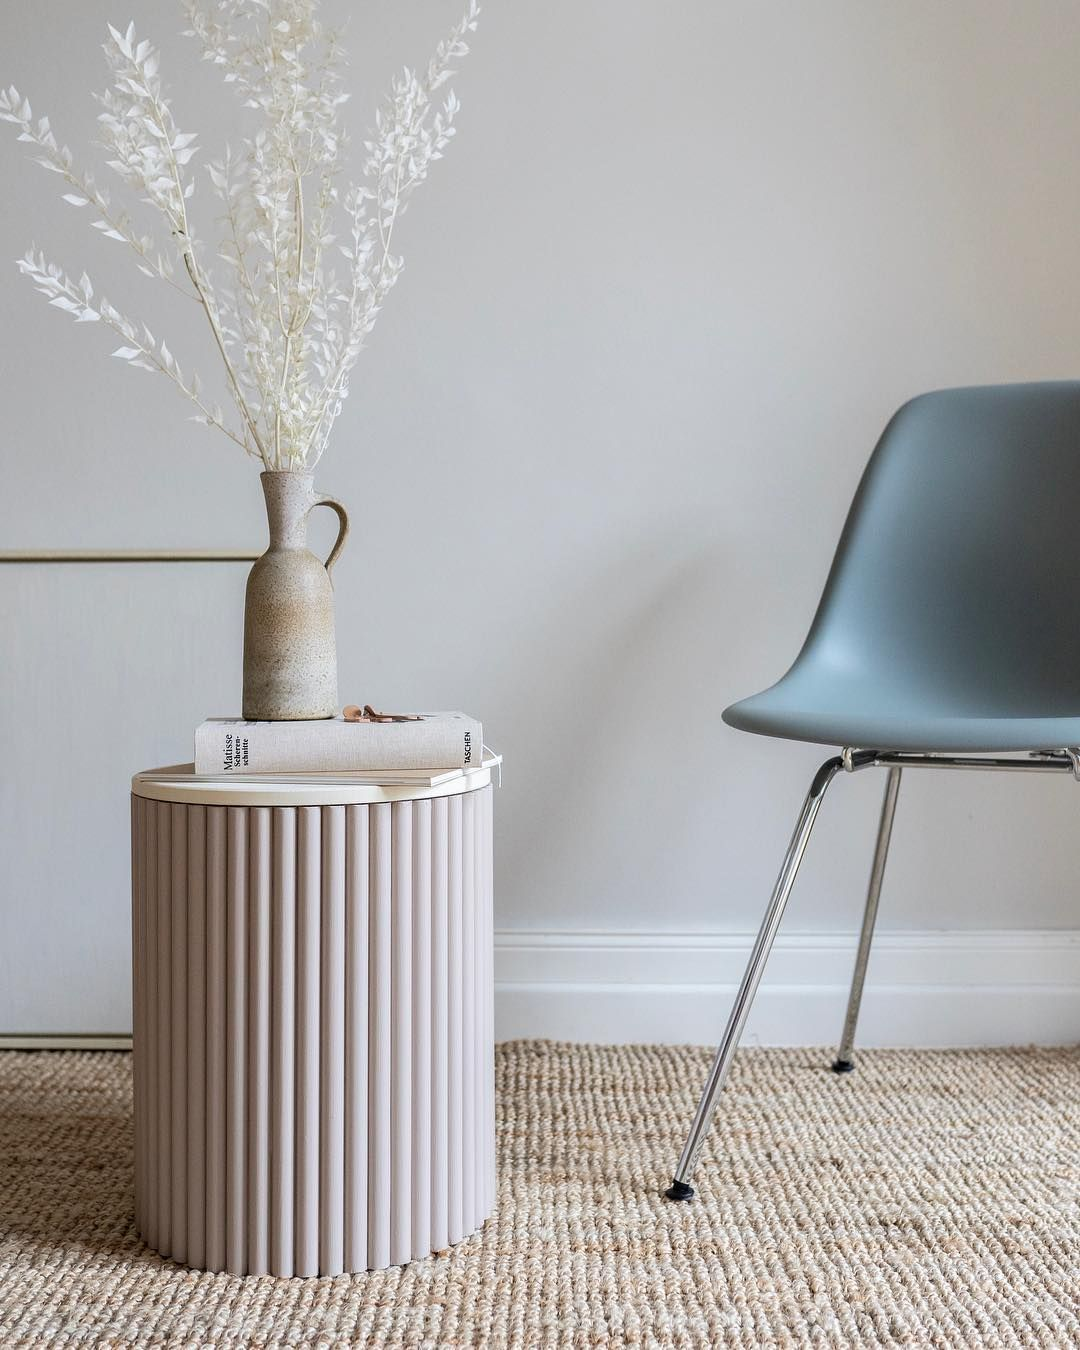 Diy Side Tables To Add More Storage To Your Living Room In 2020 Diy Side Table Side Table Decor Stylish Tables